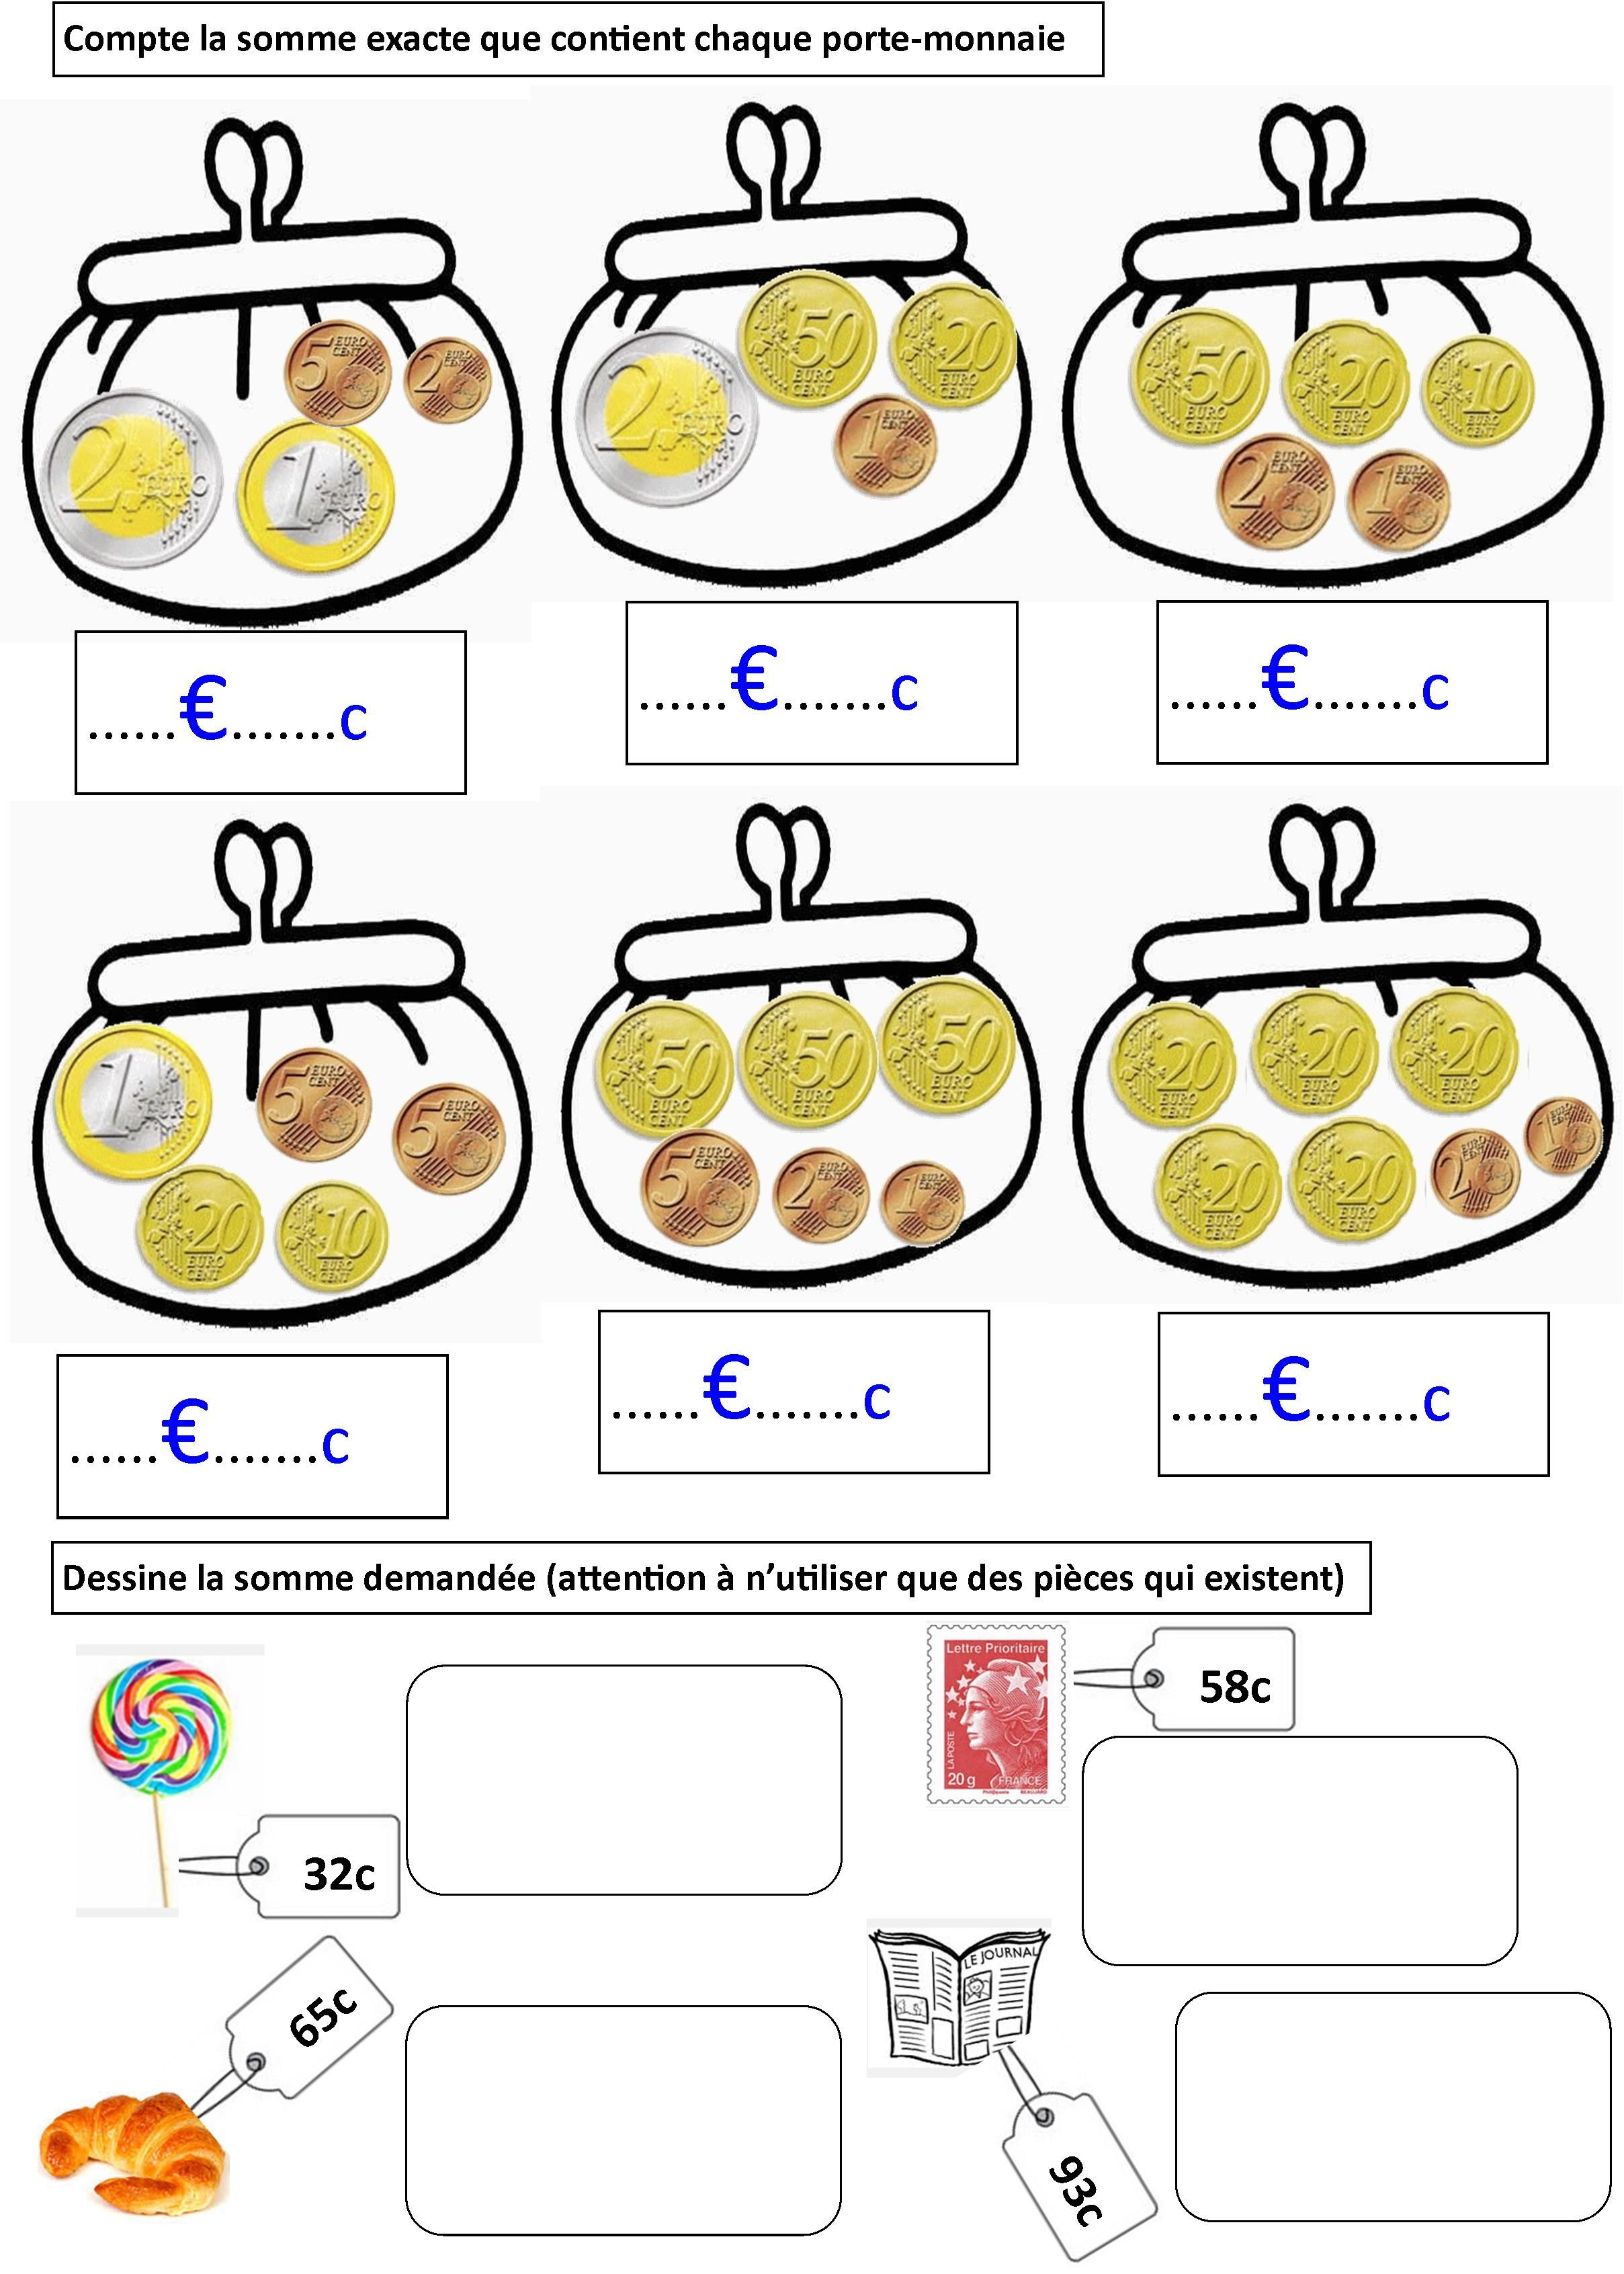 Berühmt exercices 1 | monnaie € * money $ | Pinterest | Exercices, École  ML35